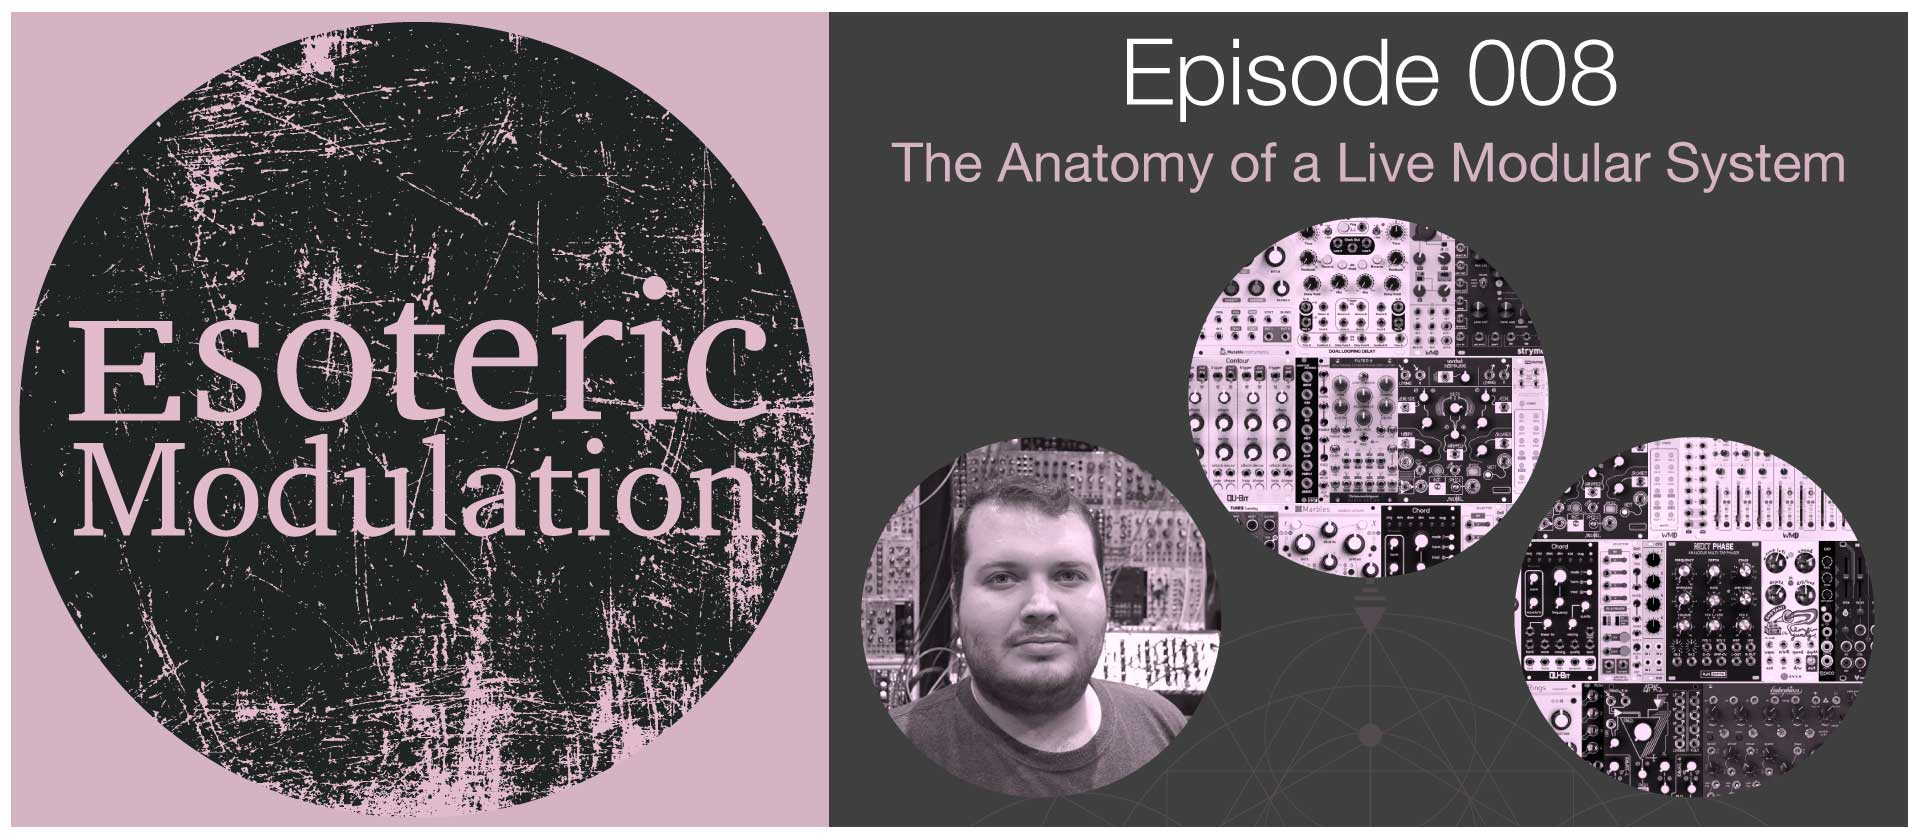 Esoteric-Modulation-Episode-008-The-anatomy-of-a-live-Modular-.jpg